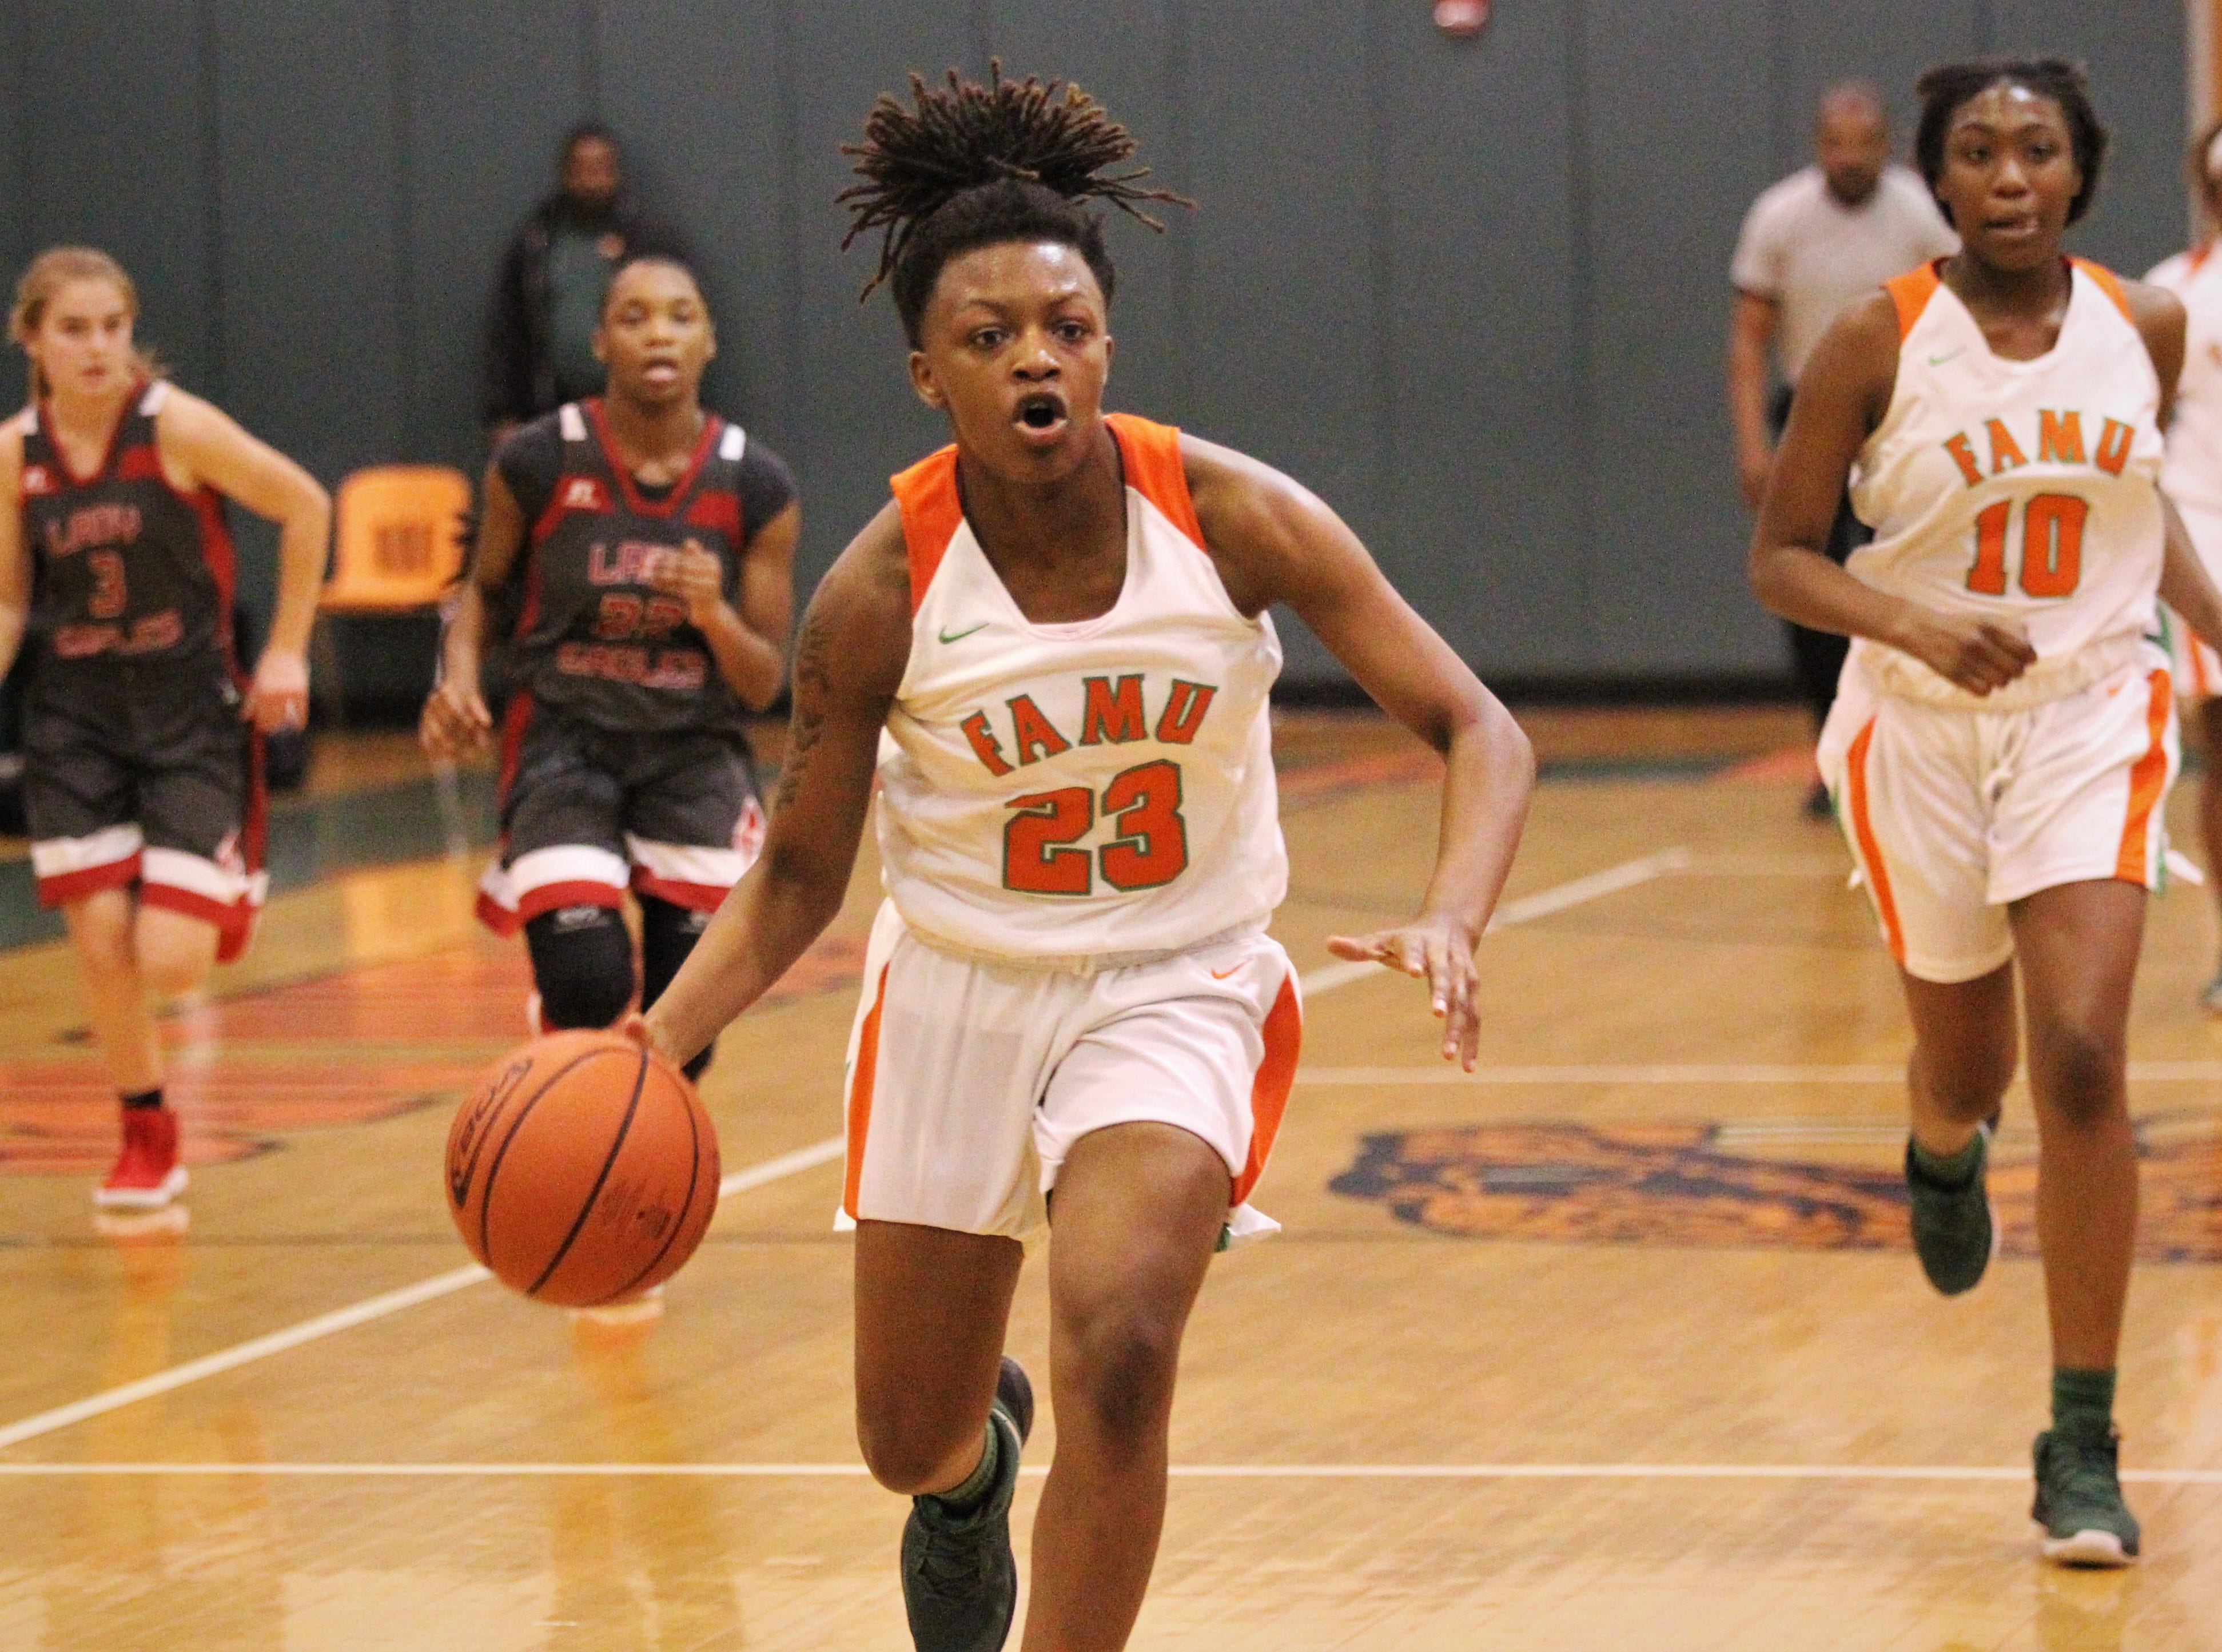 FAMU DRS senior Ayleshia VIckers runs up court on a fastbreak as FAMU DRS' girls basketball team beat NFC 59-41 for a District 1-3A title on Jan. 7, 2019.